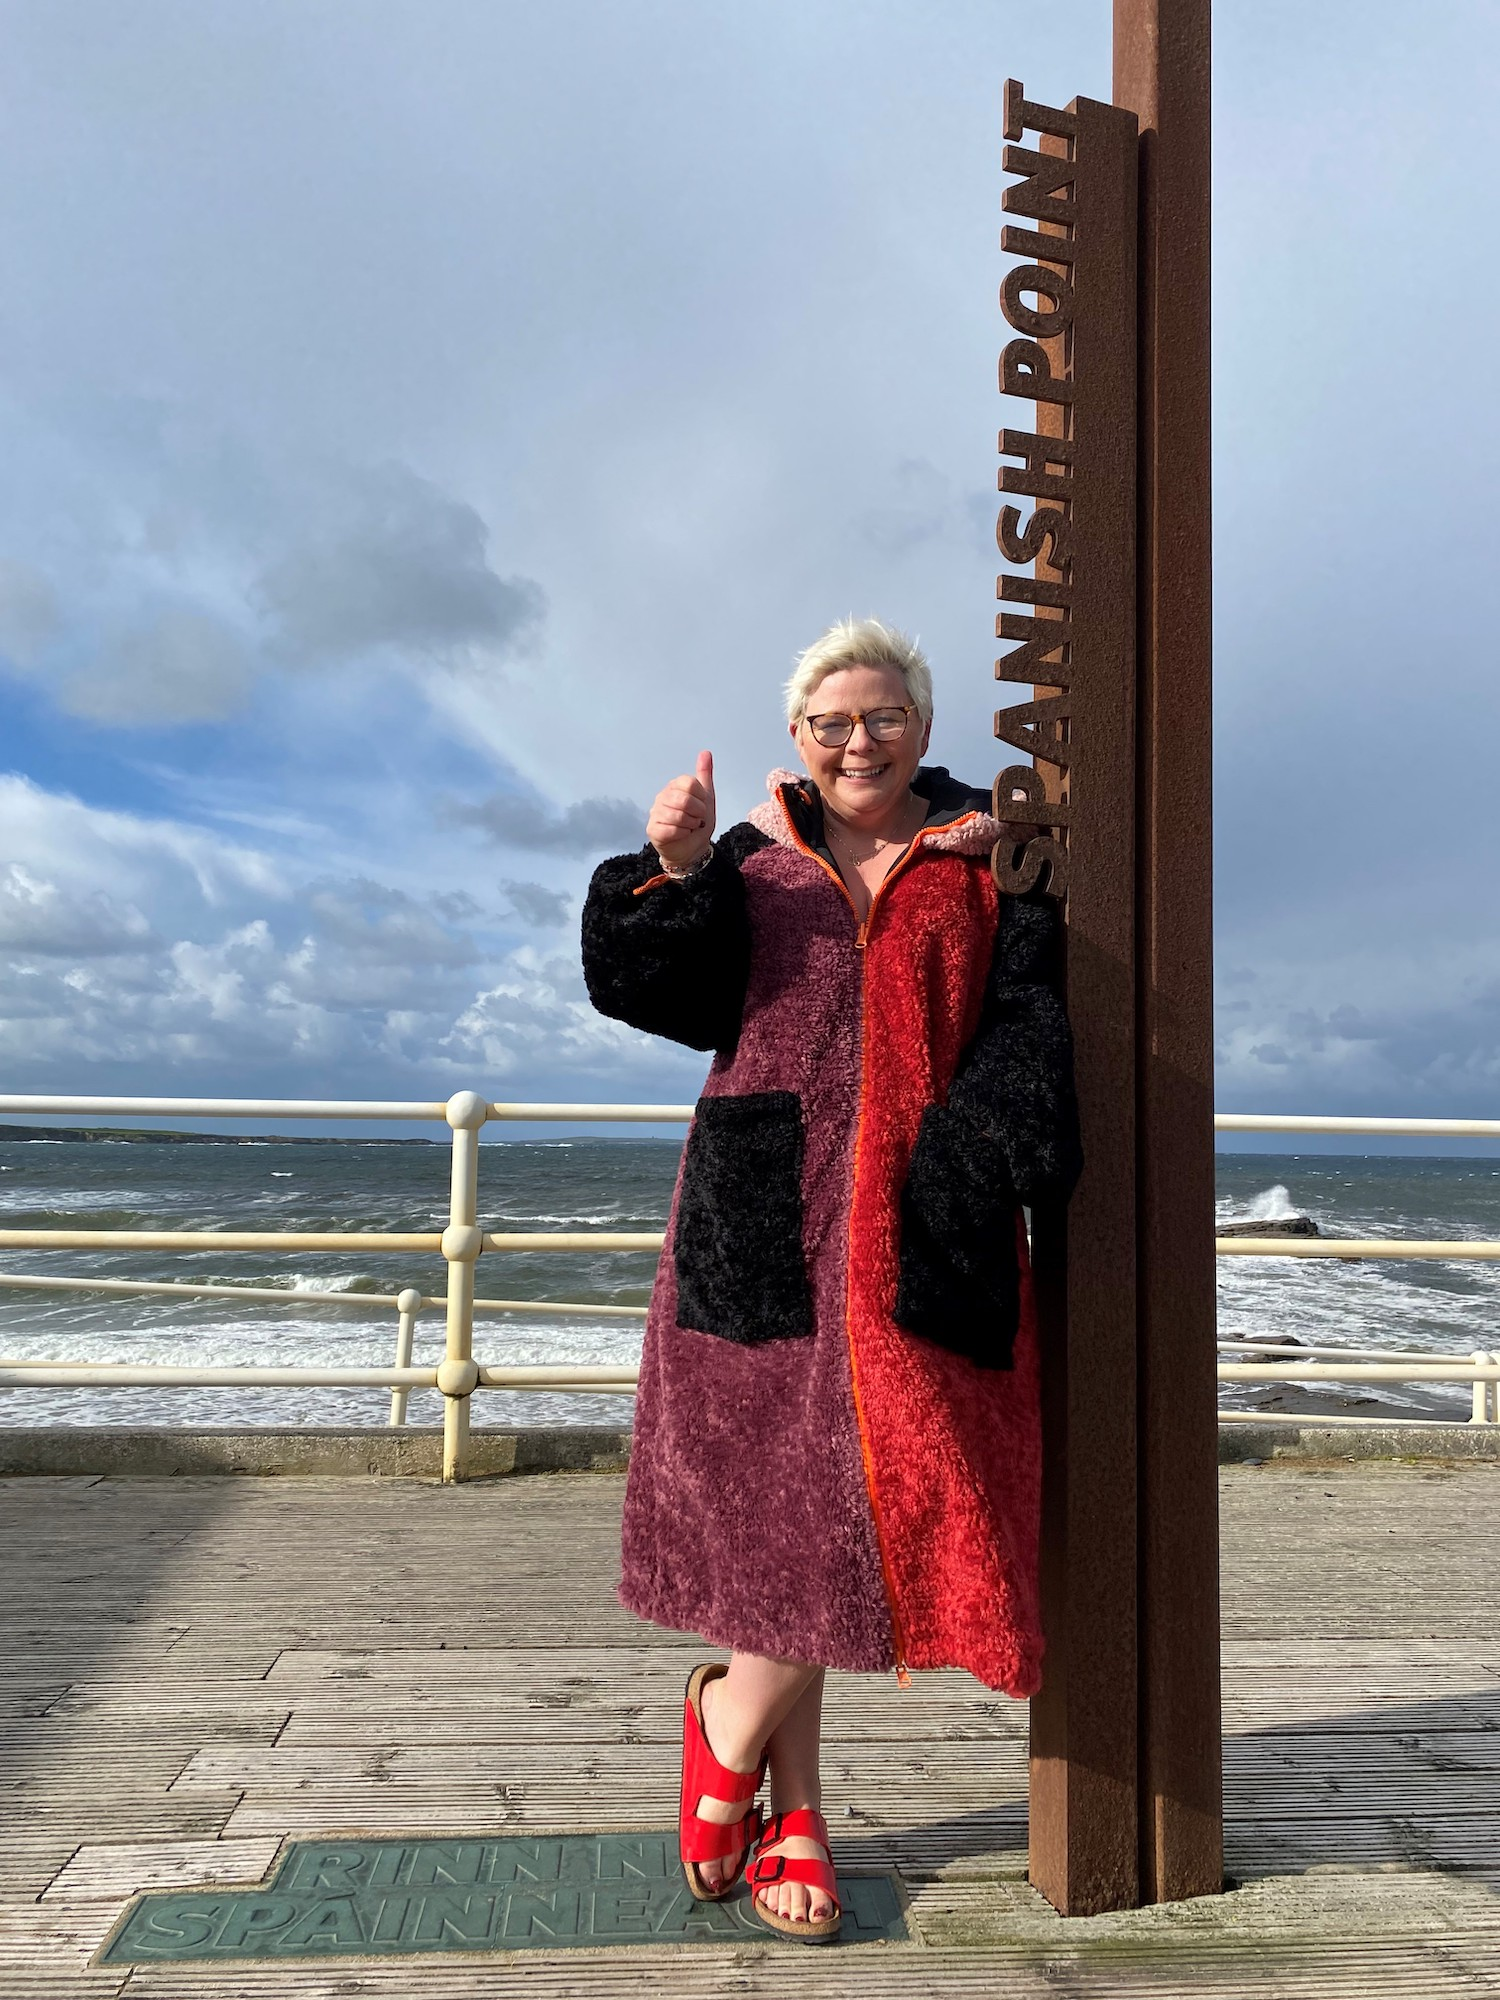 June Curtin Building off her successful fundraising campaign last year, June has upped the ante this year by committing to swimming a total of 63 swims, starting on December 1 to the December 21.